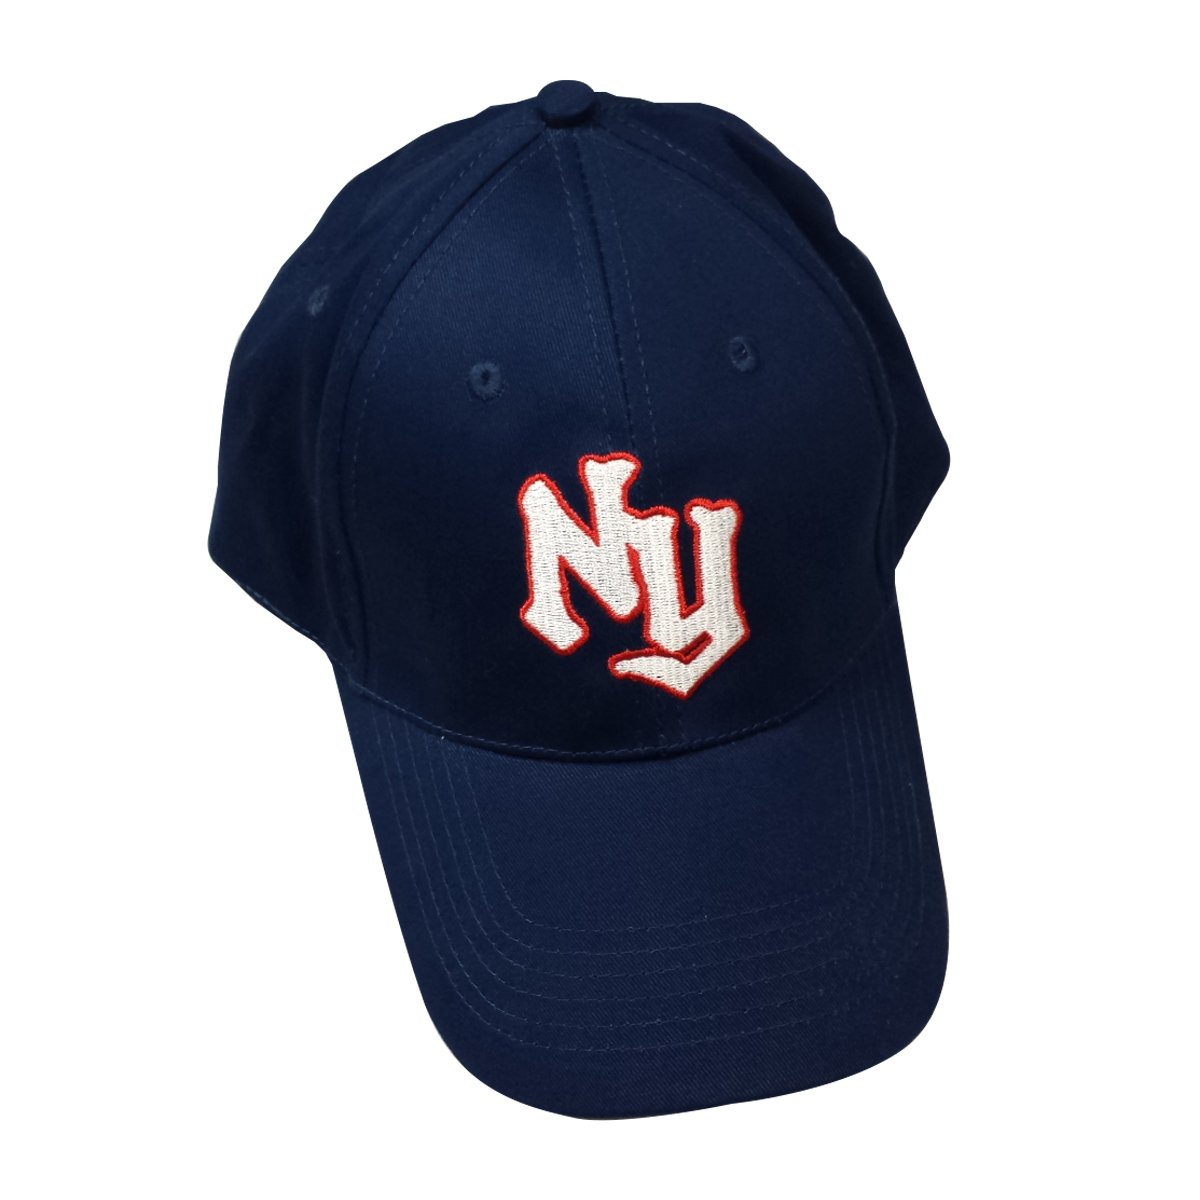 Roy Hobbs New York Knights Baseball Cap MyPartyShirt